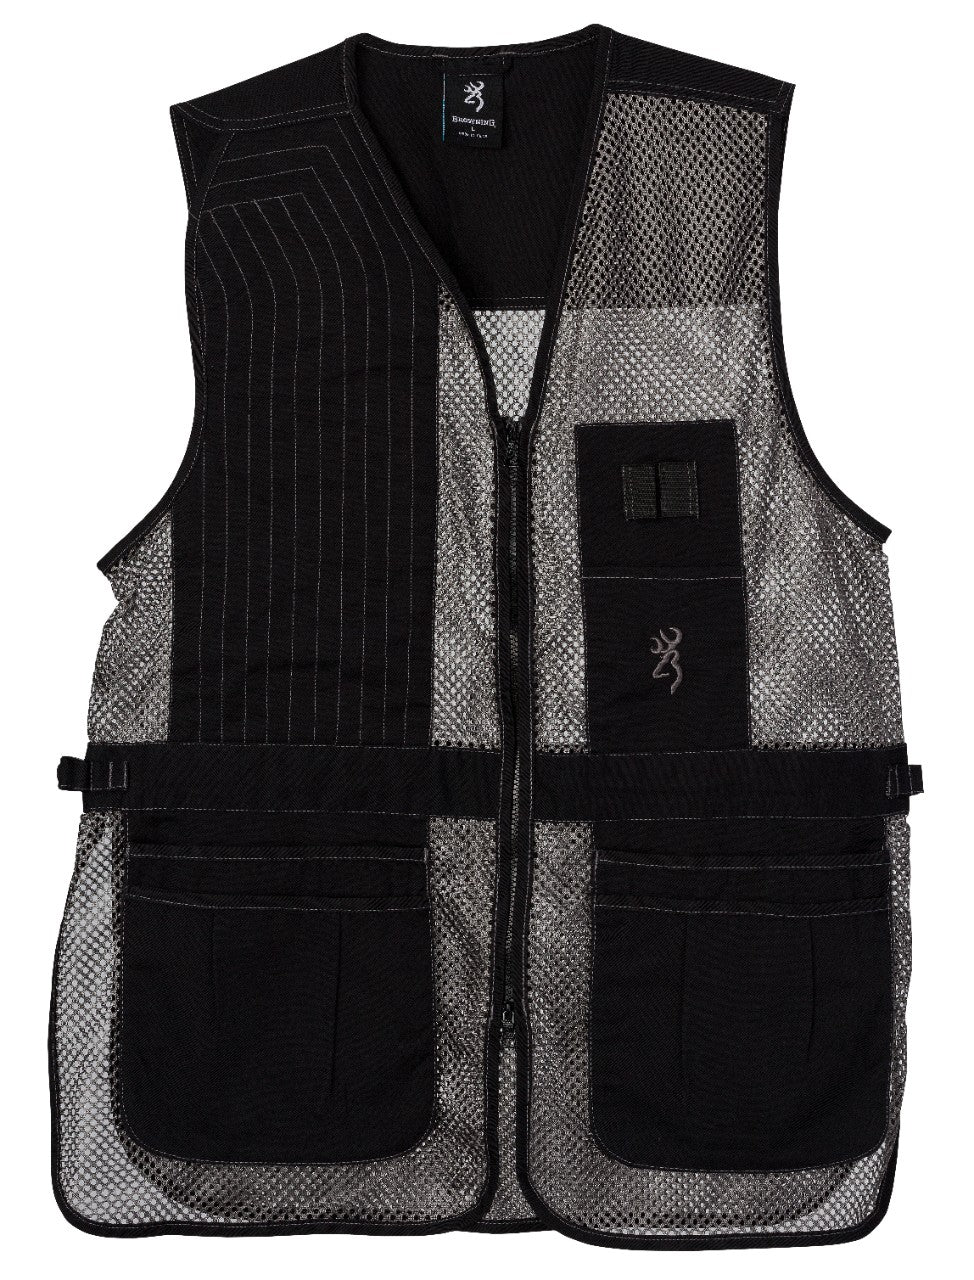 VEST,TRAPPER CREEK BLK/GRAY ,3XL